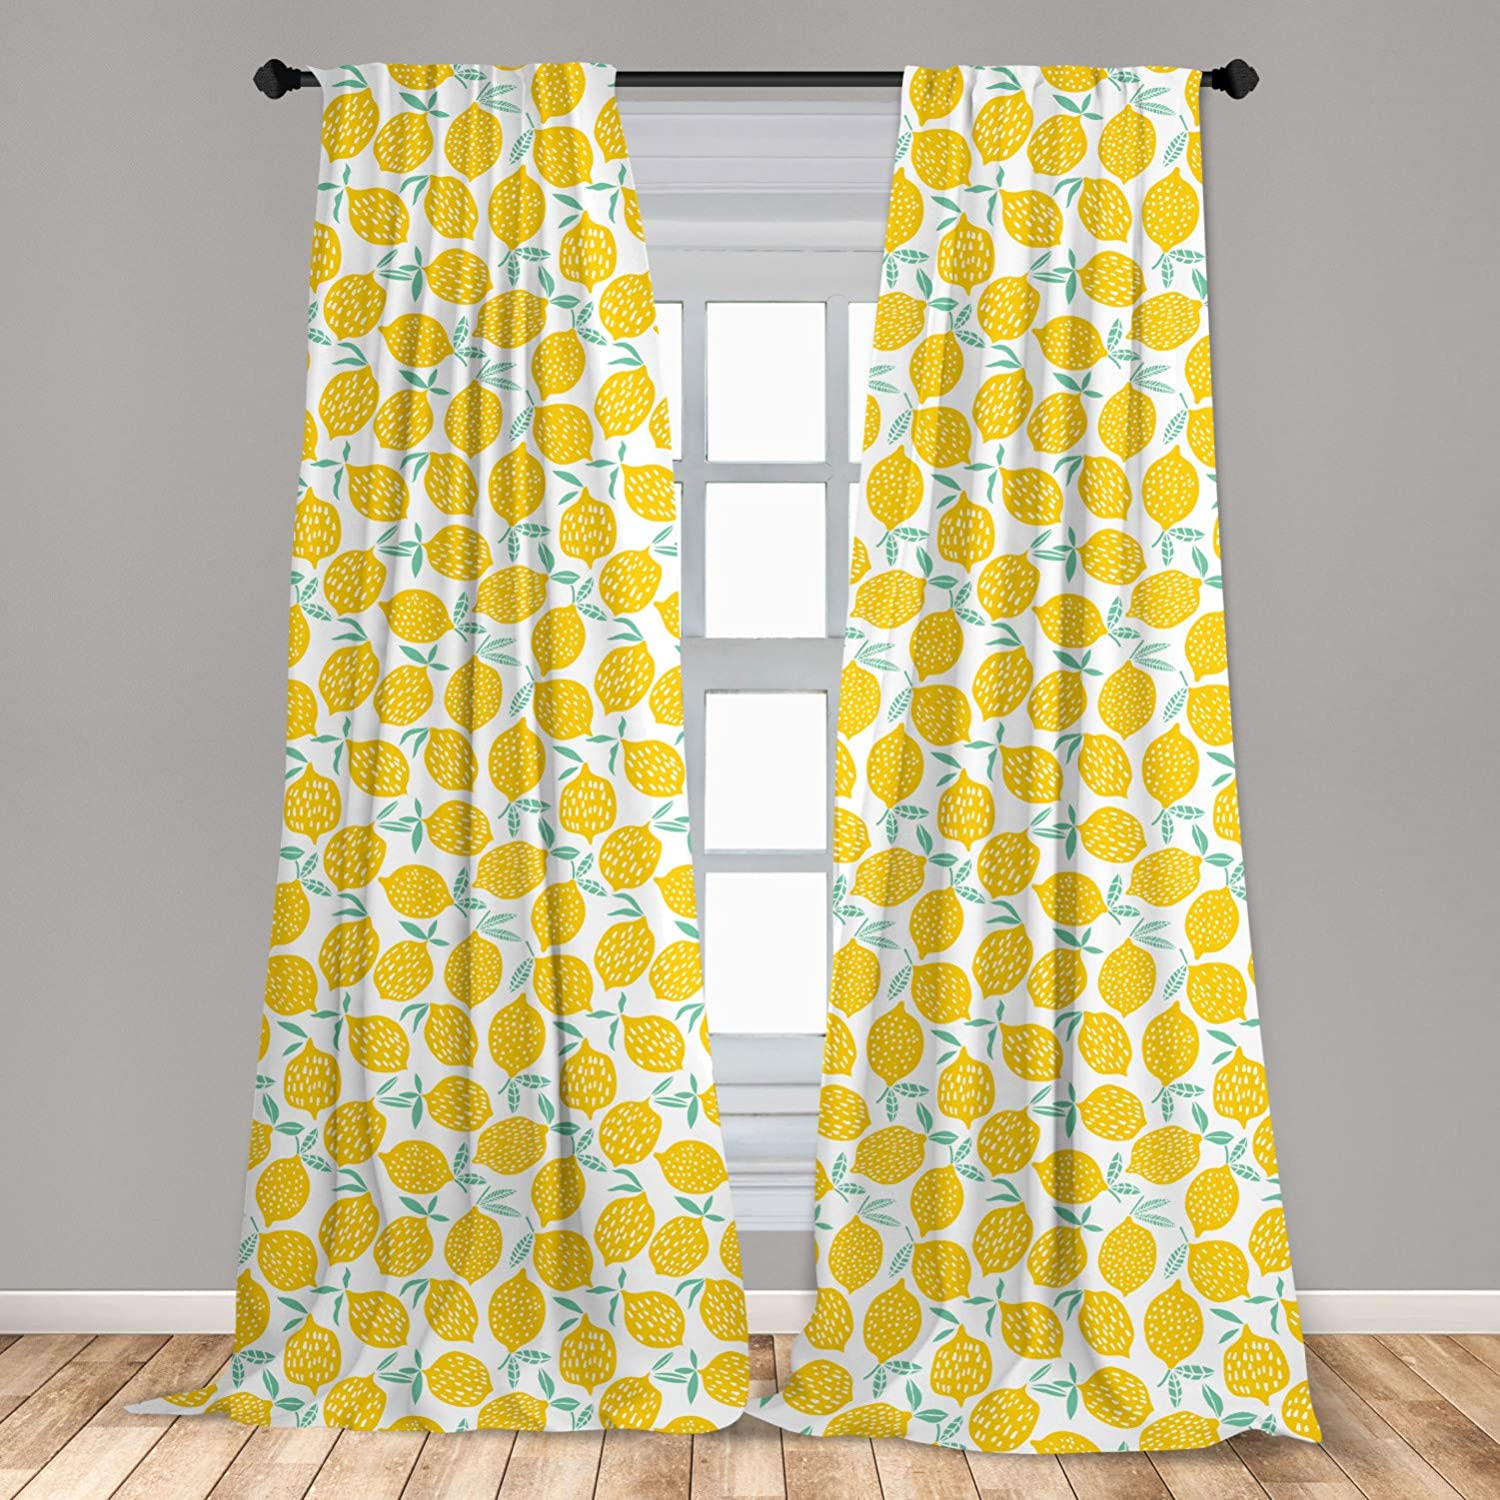 Lunarable Mint And Yellow Window Curtains Summer Fruit Pattern With Dots Stripes Doodle Lemons And Leaves Lightweight Decorative Panels Set Of 2 With Rod Pocket 56 X 84 Mint Green Home